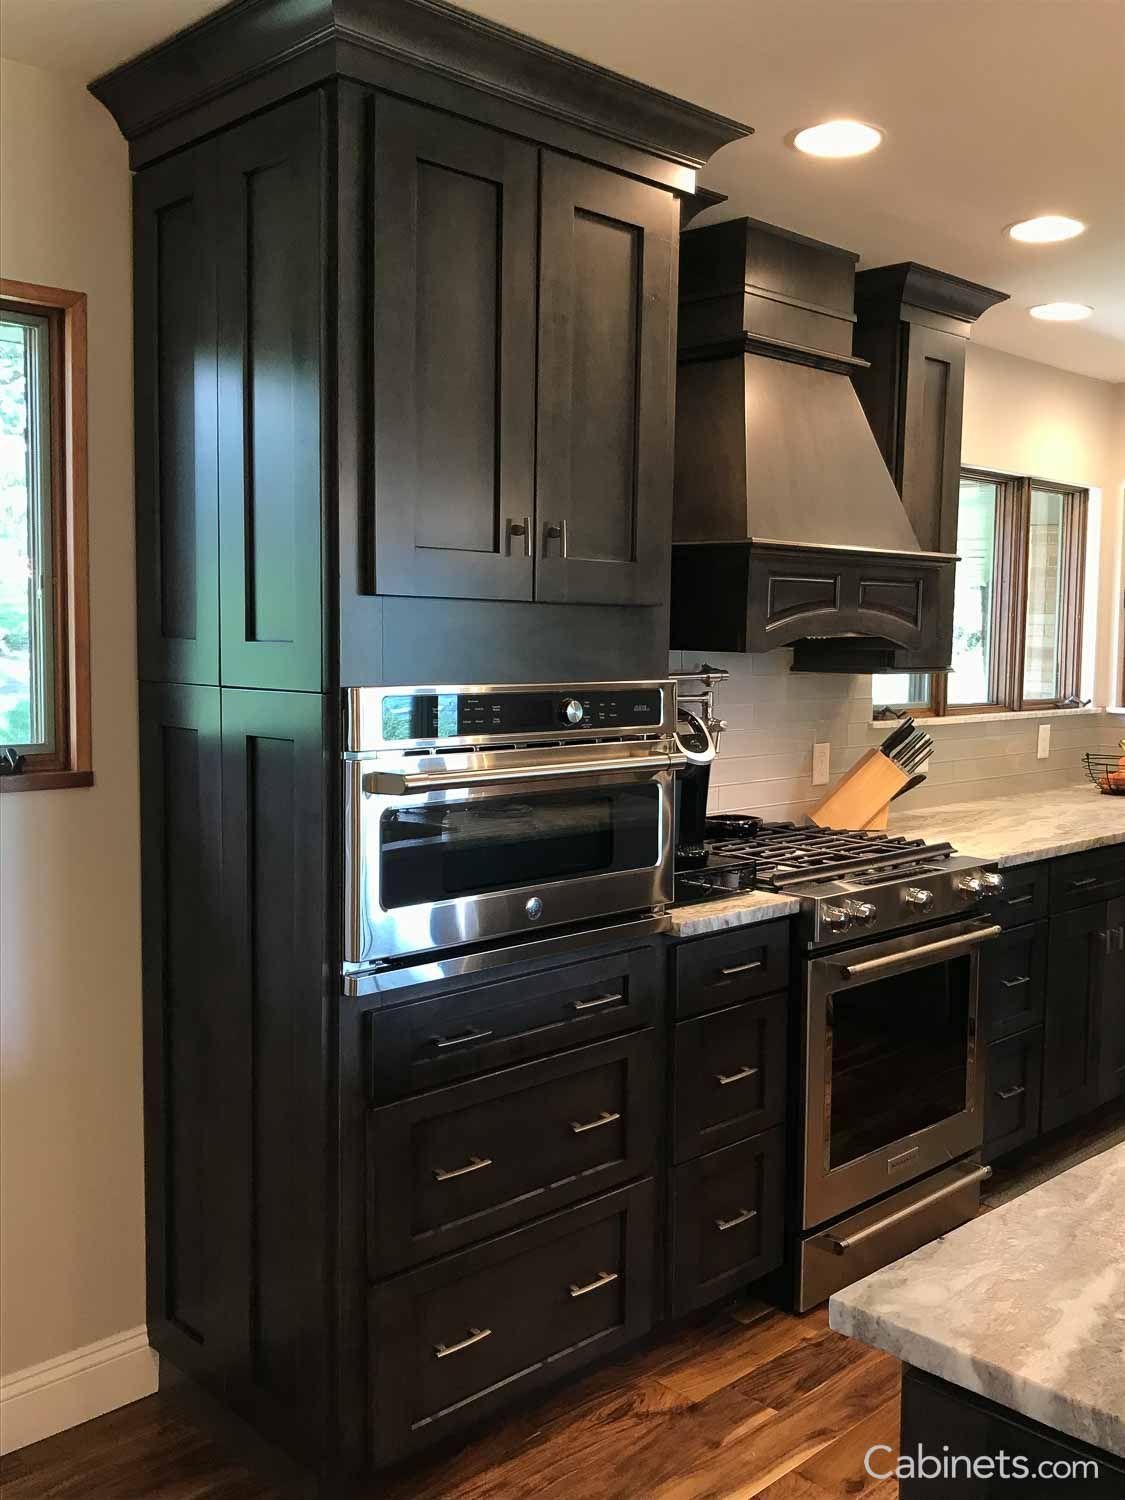 Shaker Ii Maple Slate Cabinets With Beautiful Crown Molding Shaker Style Kitchen Cabinets Shaker Style Cabinets Shaker Style Kitchens